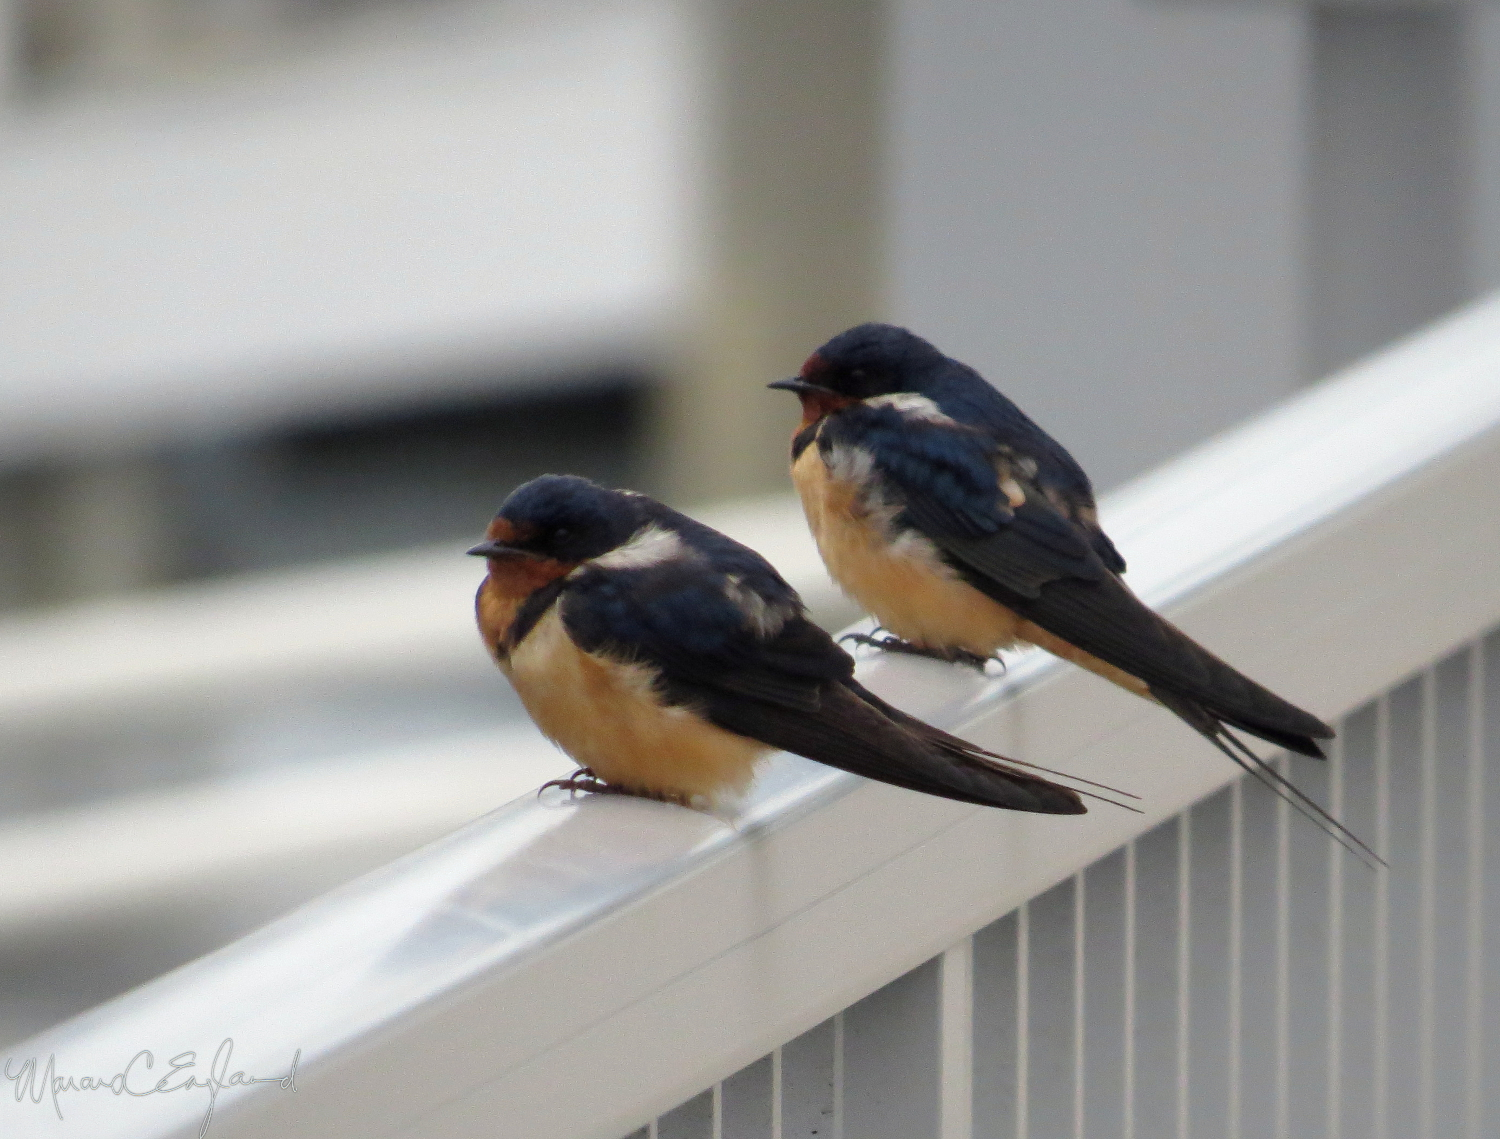 A pair of Barn Swallows in Marina del Rey. Photo by Marcus C. England.